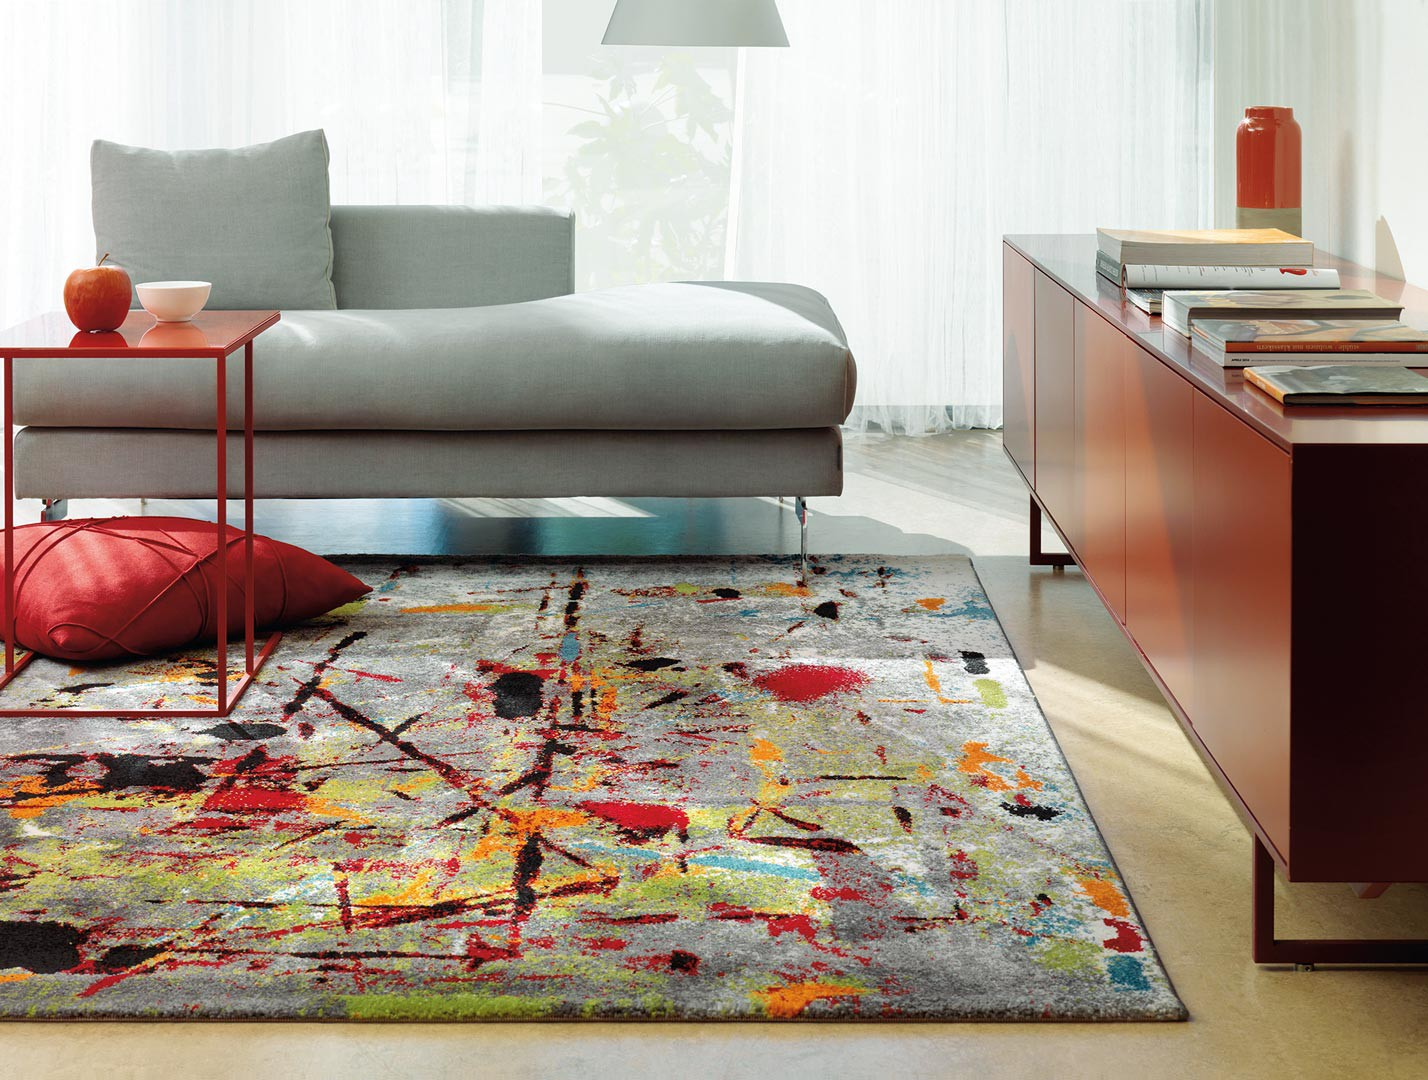 Tapis de salon moderne multicolore slam arte espina - Tapis salon multicolore ...